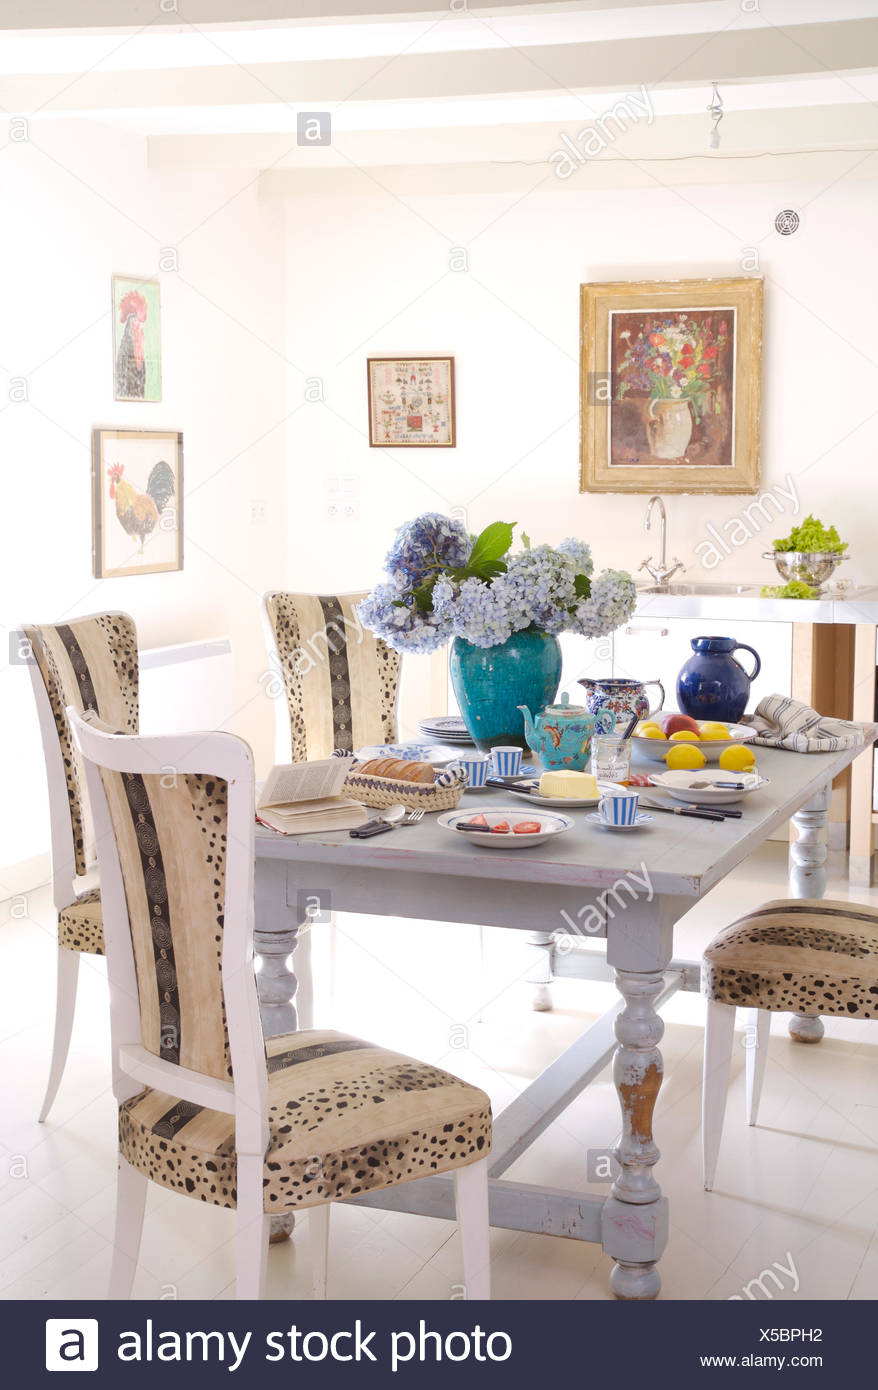 Upholstered White Painted Chairs At Painted Blue Table In French Country  Kitchen With Painted Wooden Flooring